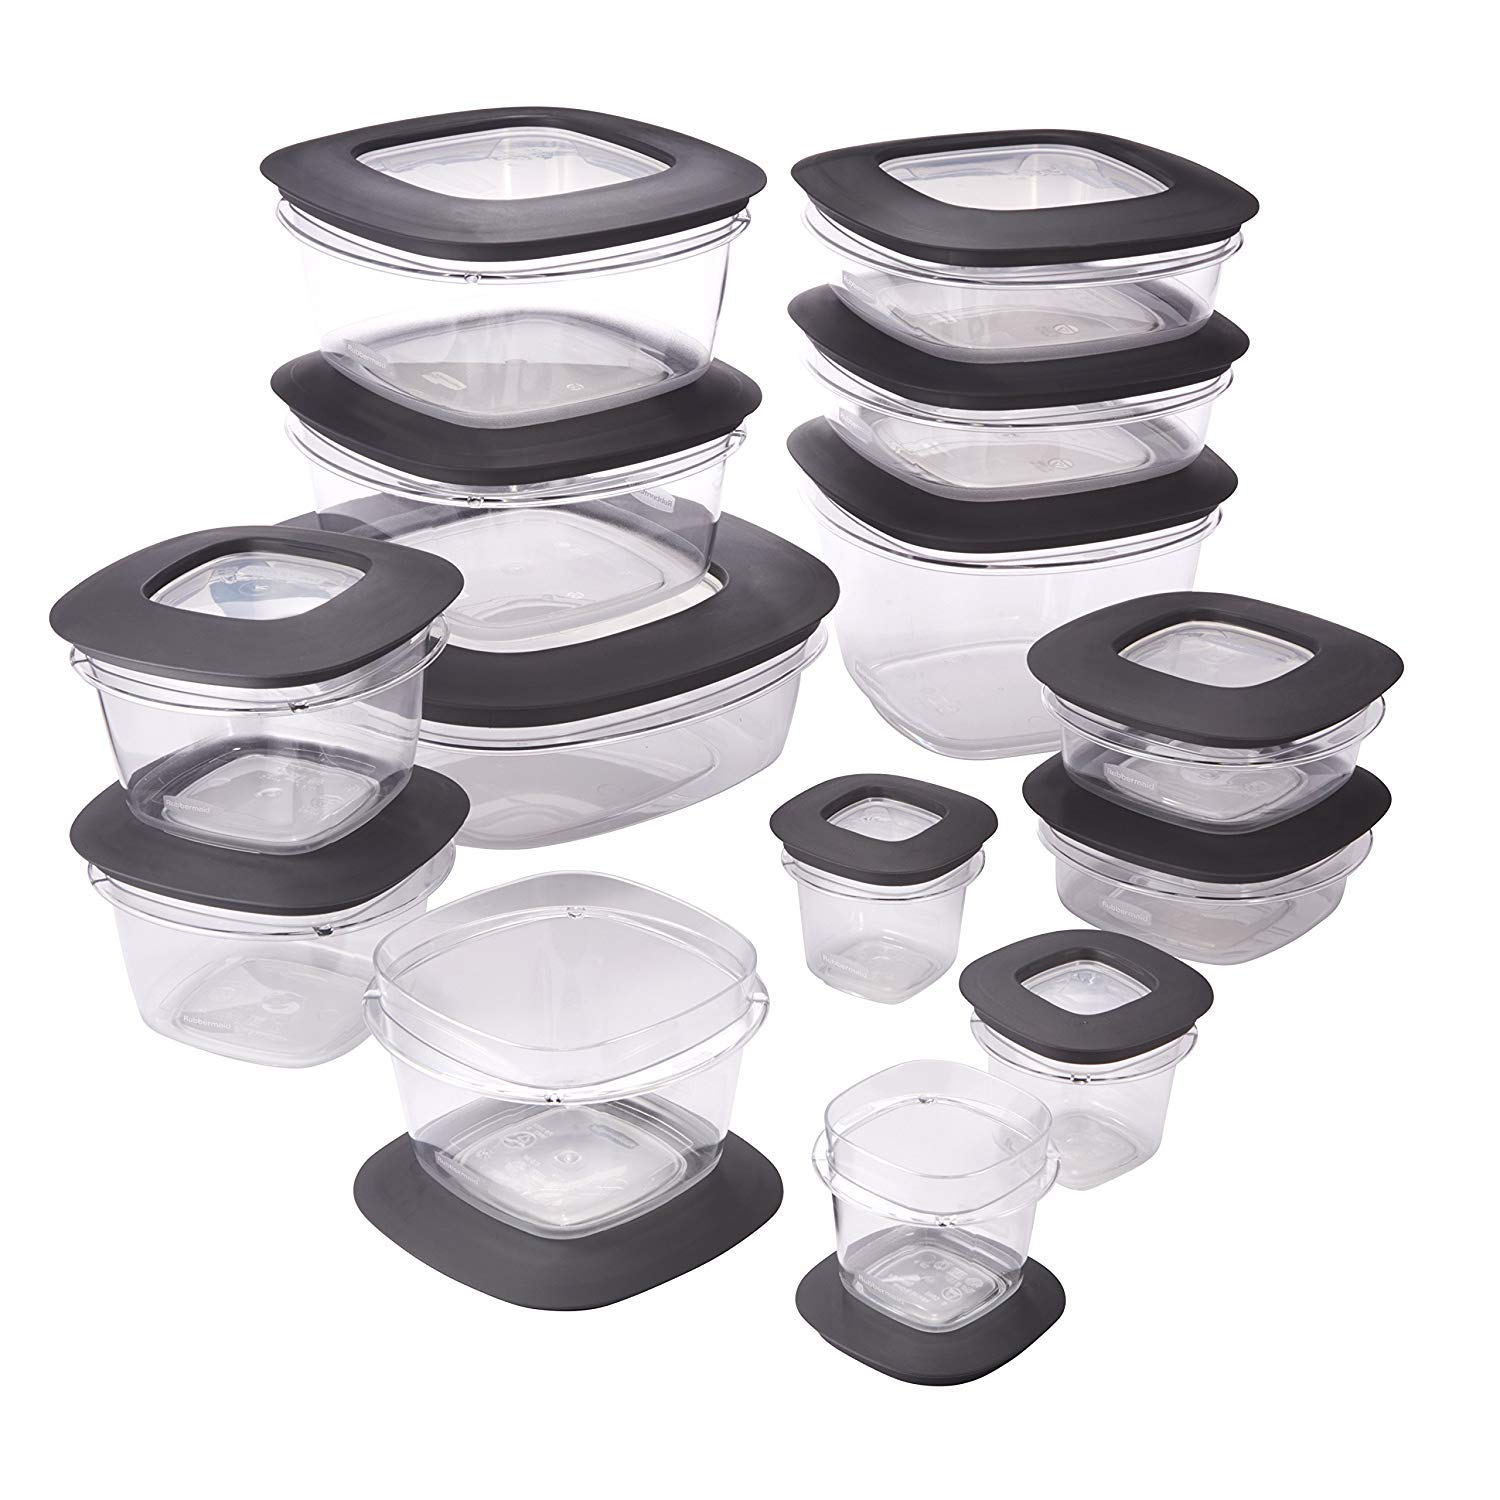 Rubbermaid 1951294 Premier Meal Prep Food Storage Containers, 28-Piece, Gray by Rubbermaid